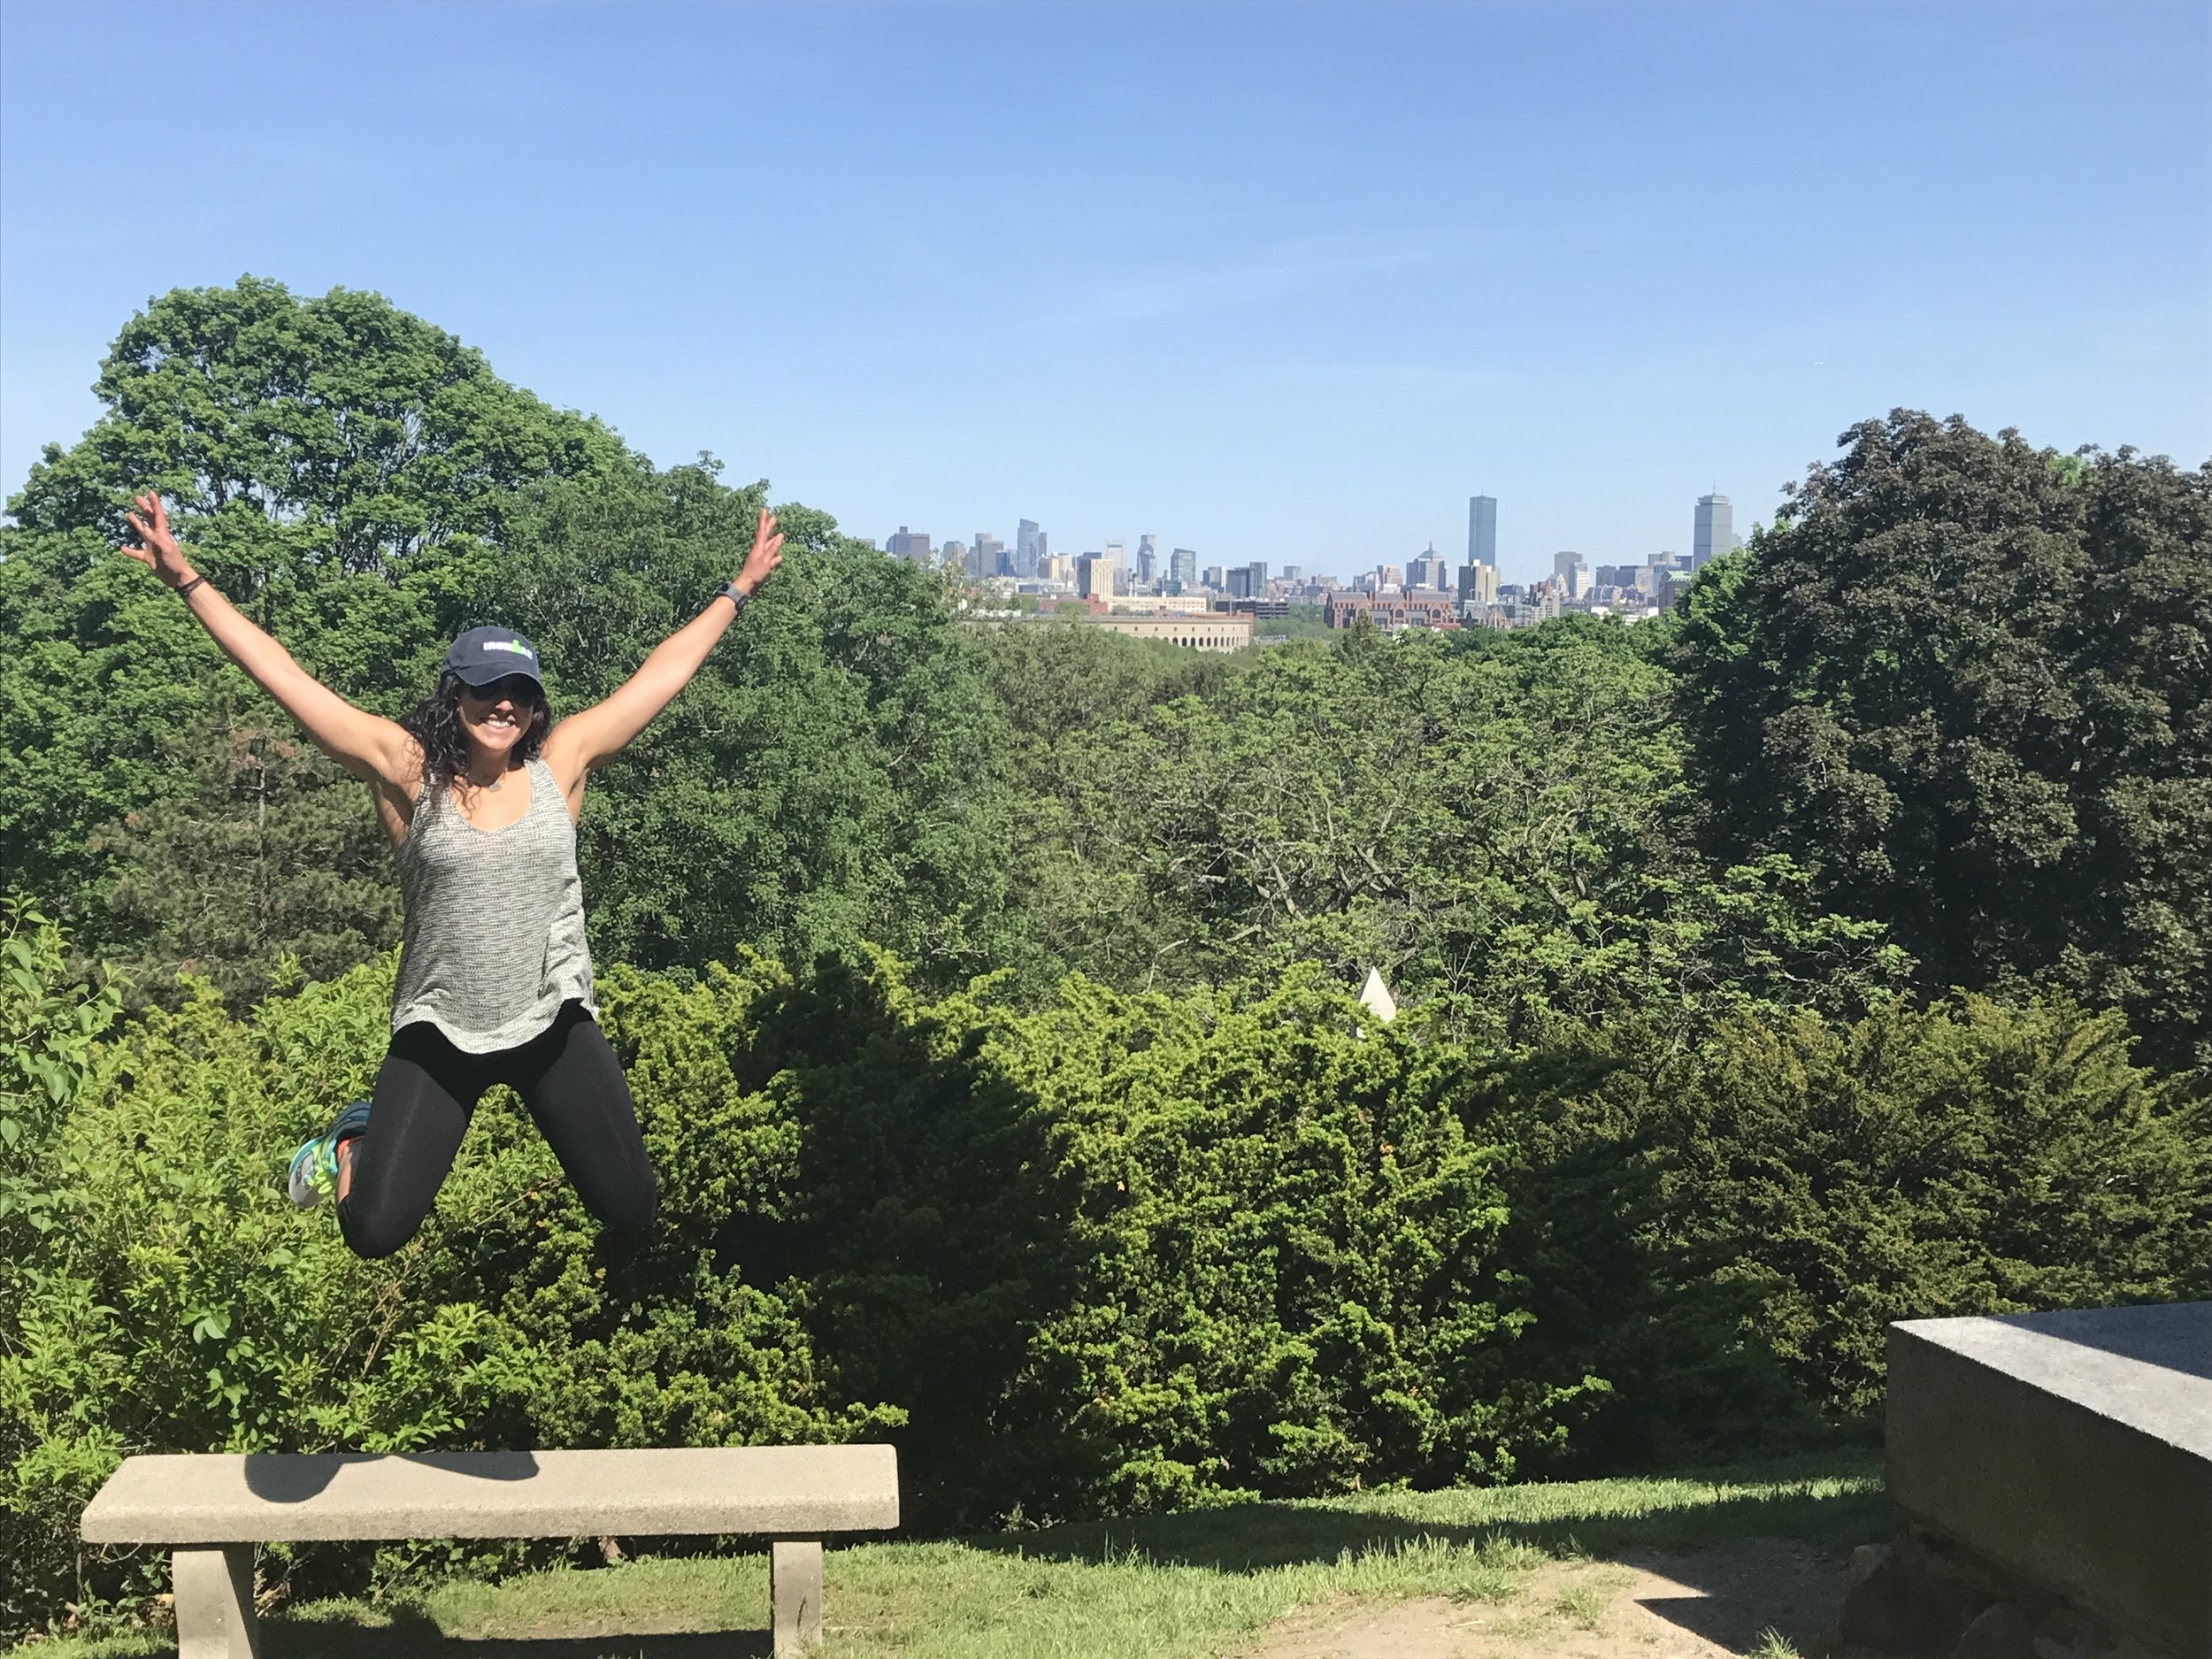 Frances Nieves Serret, a Puerto Rican behavior analyst living in Boston, MA, on one of her many adventures.